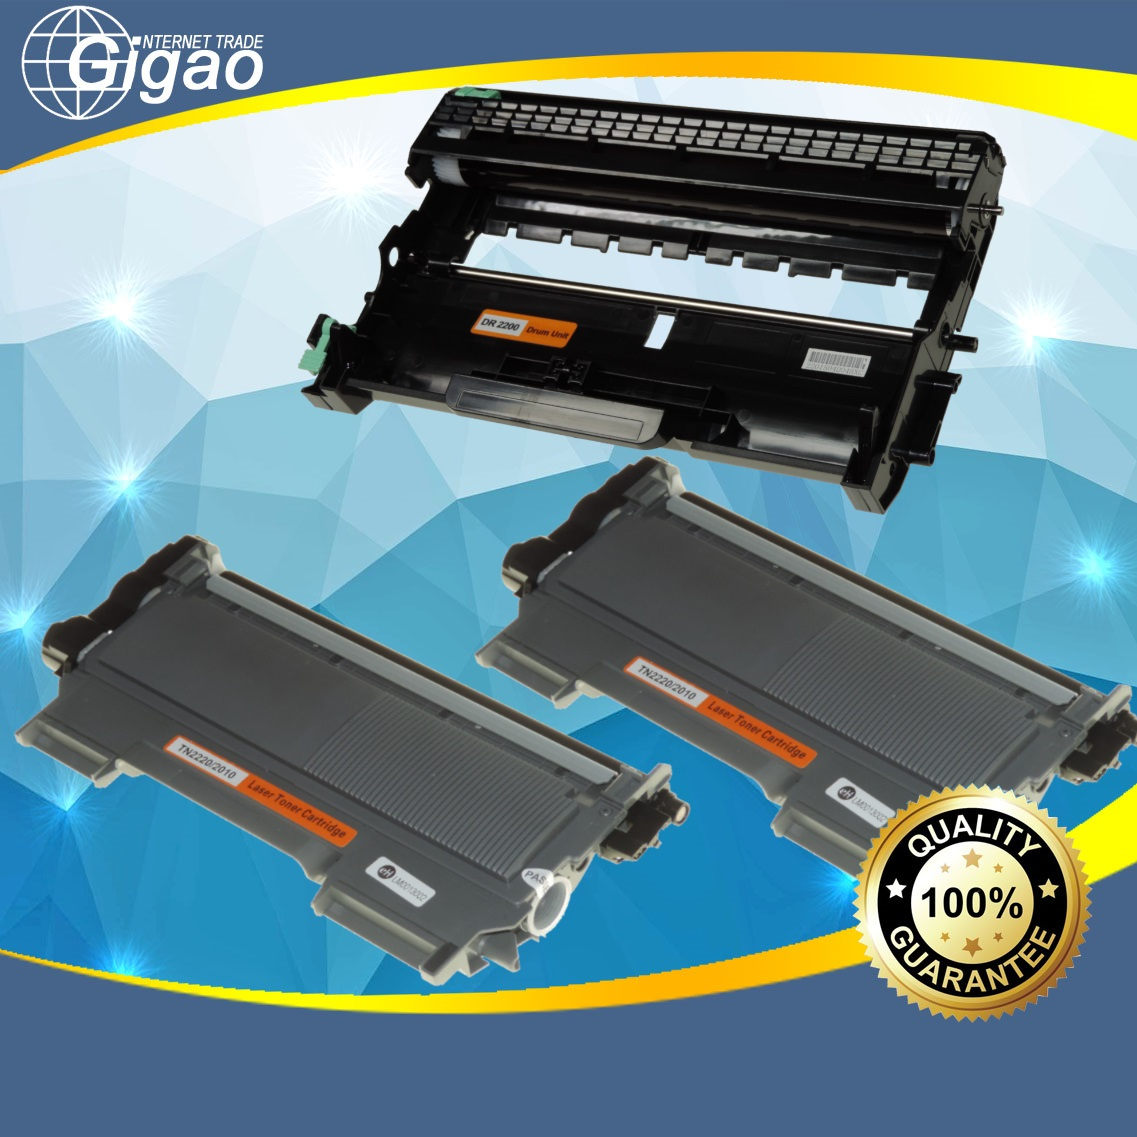 Gigao Laserdrum kompatibel Brother DR-2300 TN-2320 für HL-2230